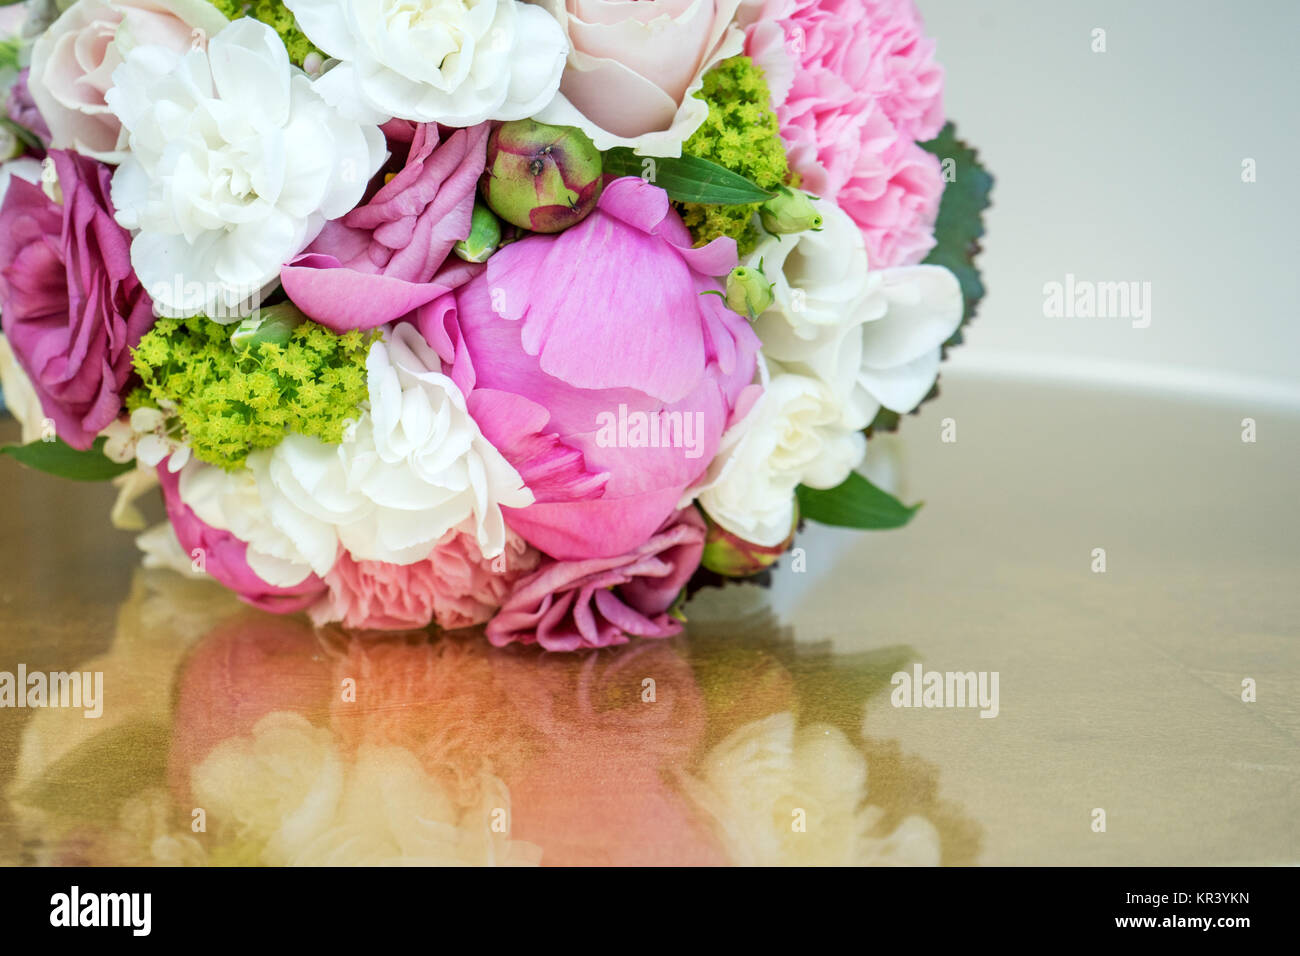 Bridal bouquet with pink and white flowers on a gold tabletop stock bridal bouquet with pink and white flowers on a gold tabletop izmirmasajfo